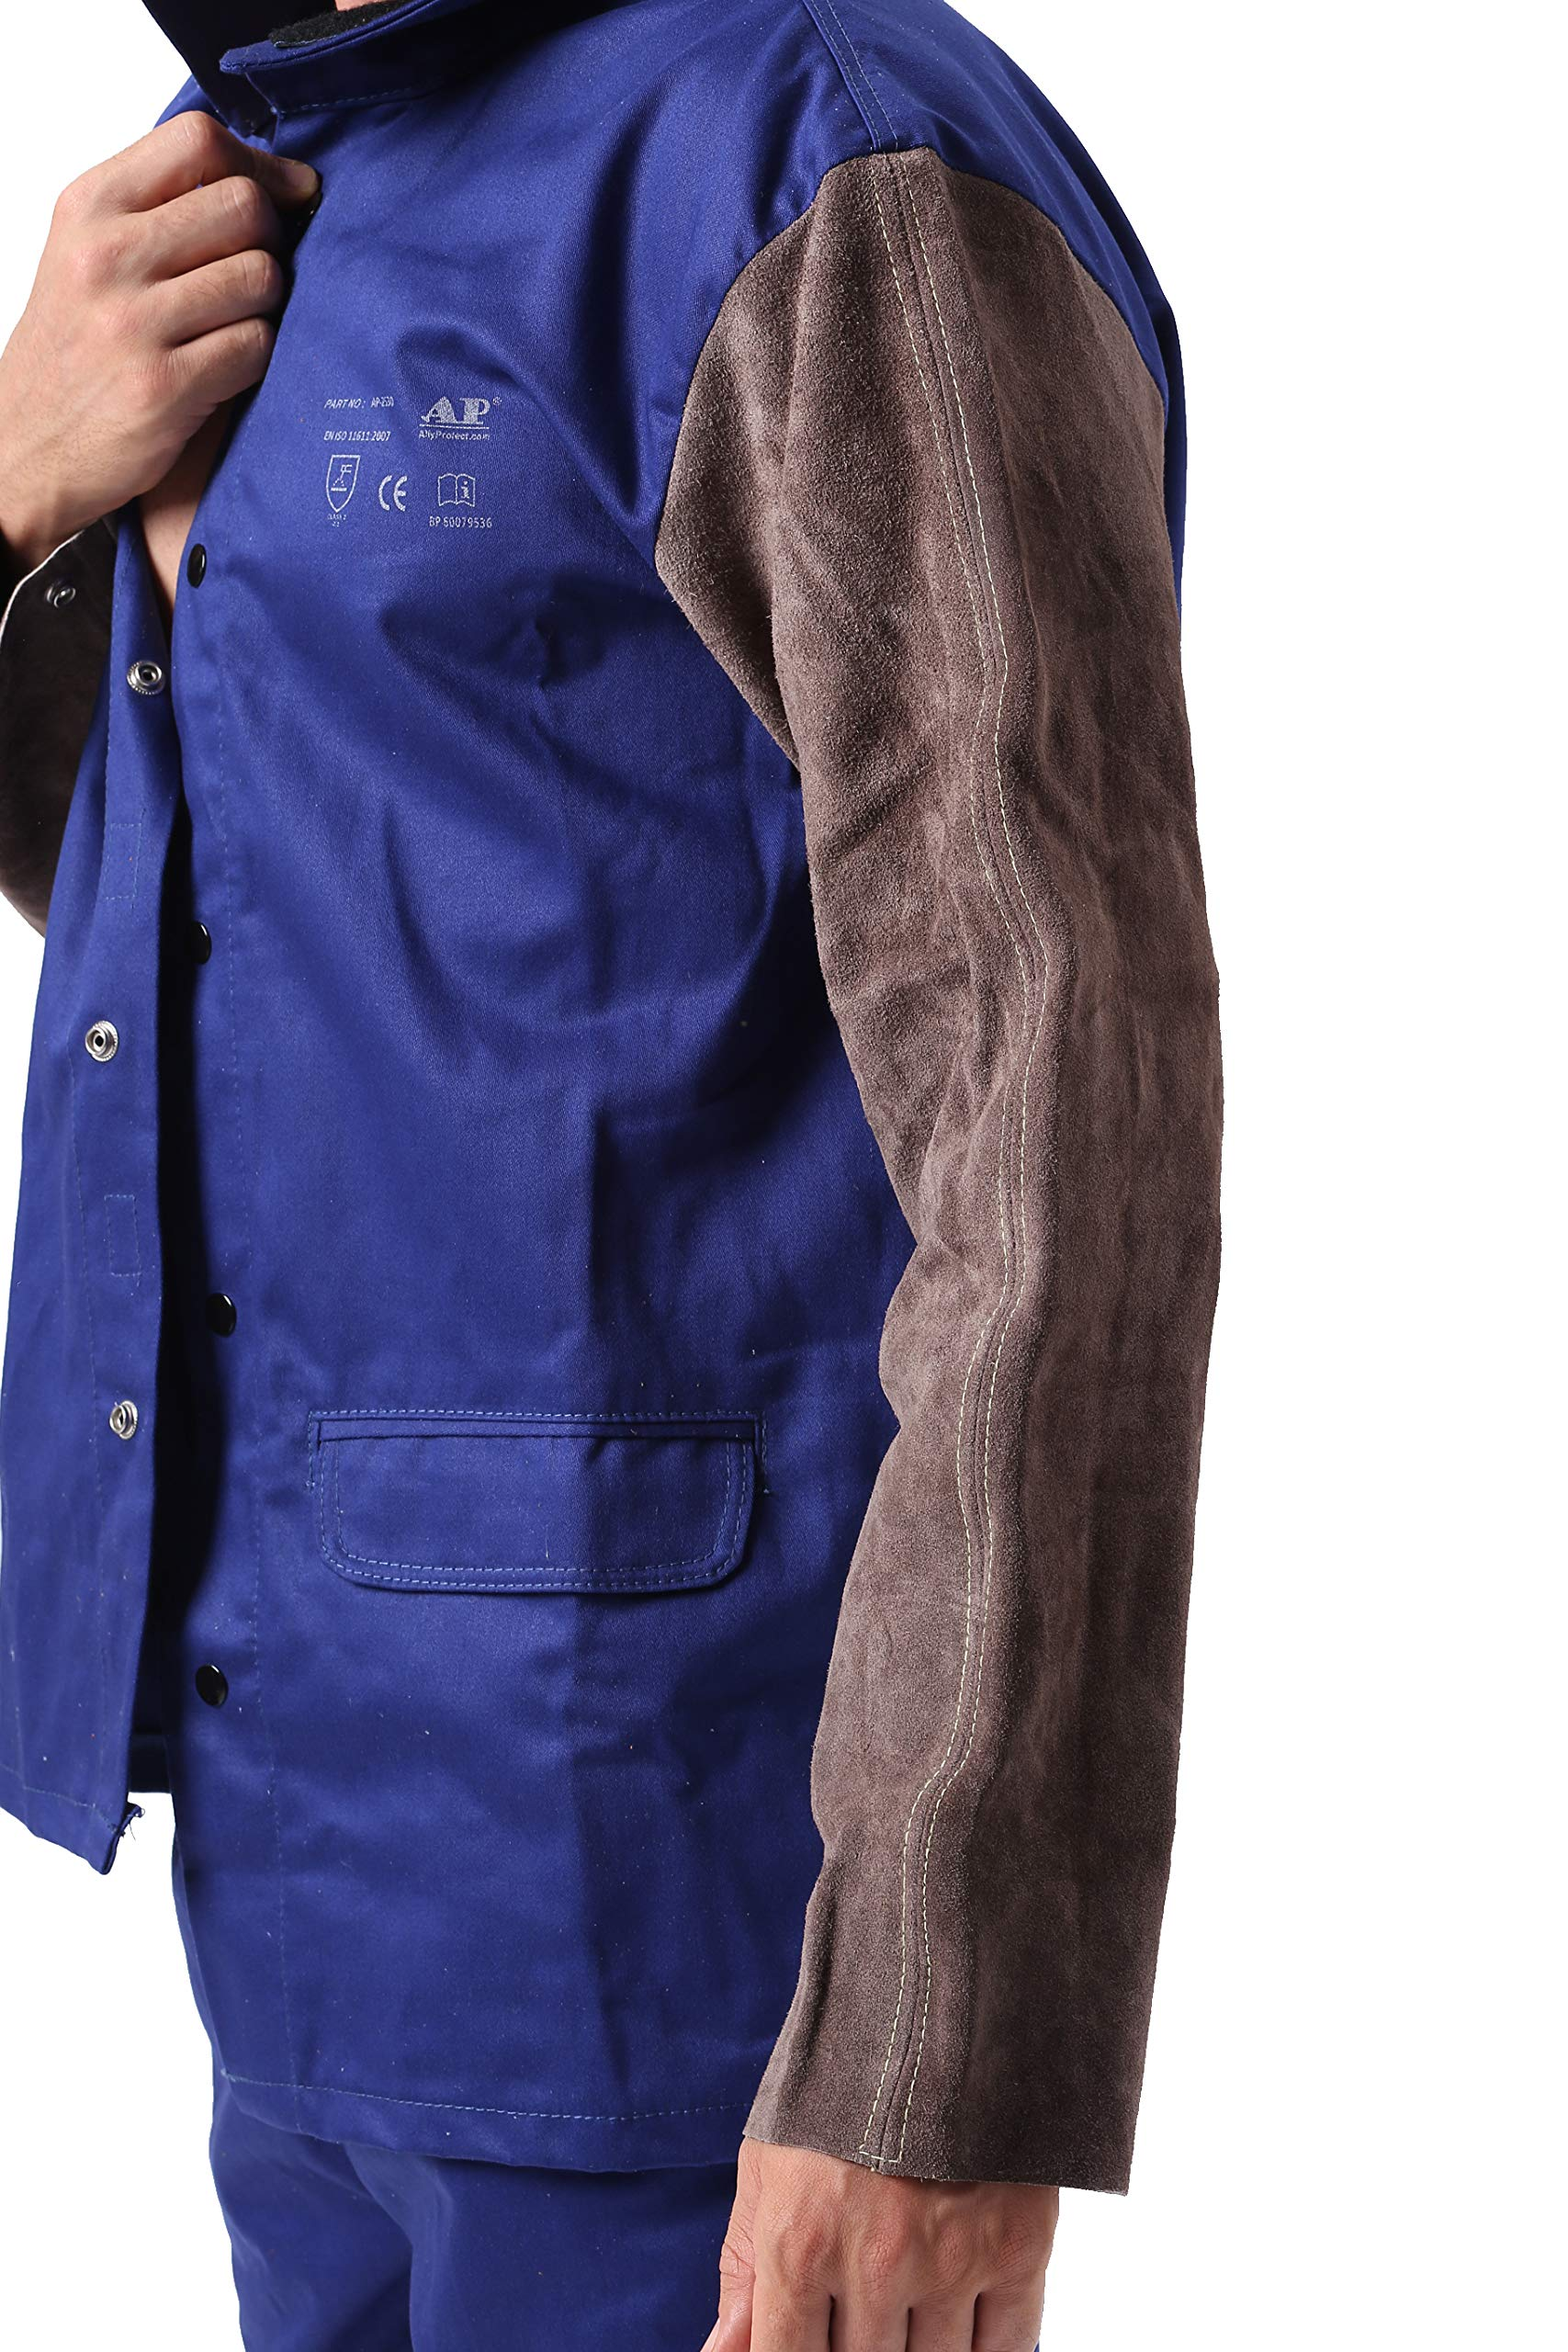 Holulo Welding Jacket with Leather Sleeve for Splash Proof Split Cow Leather Safety Apparel with CE Certiifcation,Blue Flame-Resistant,Heat Resistant Welding Suit by mufly (Image #2)